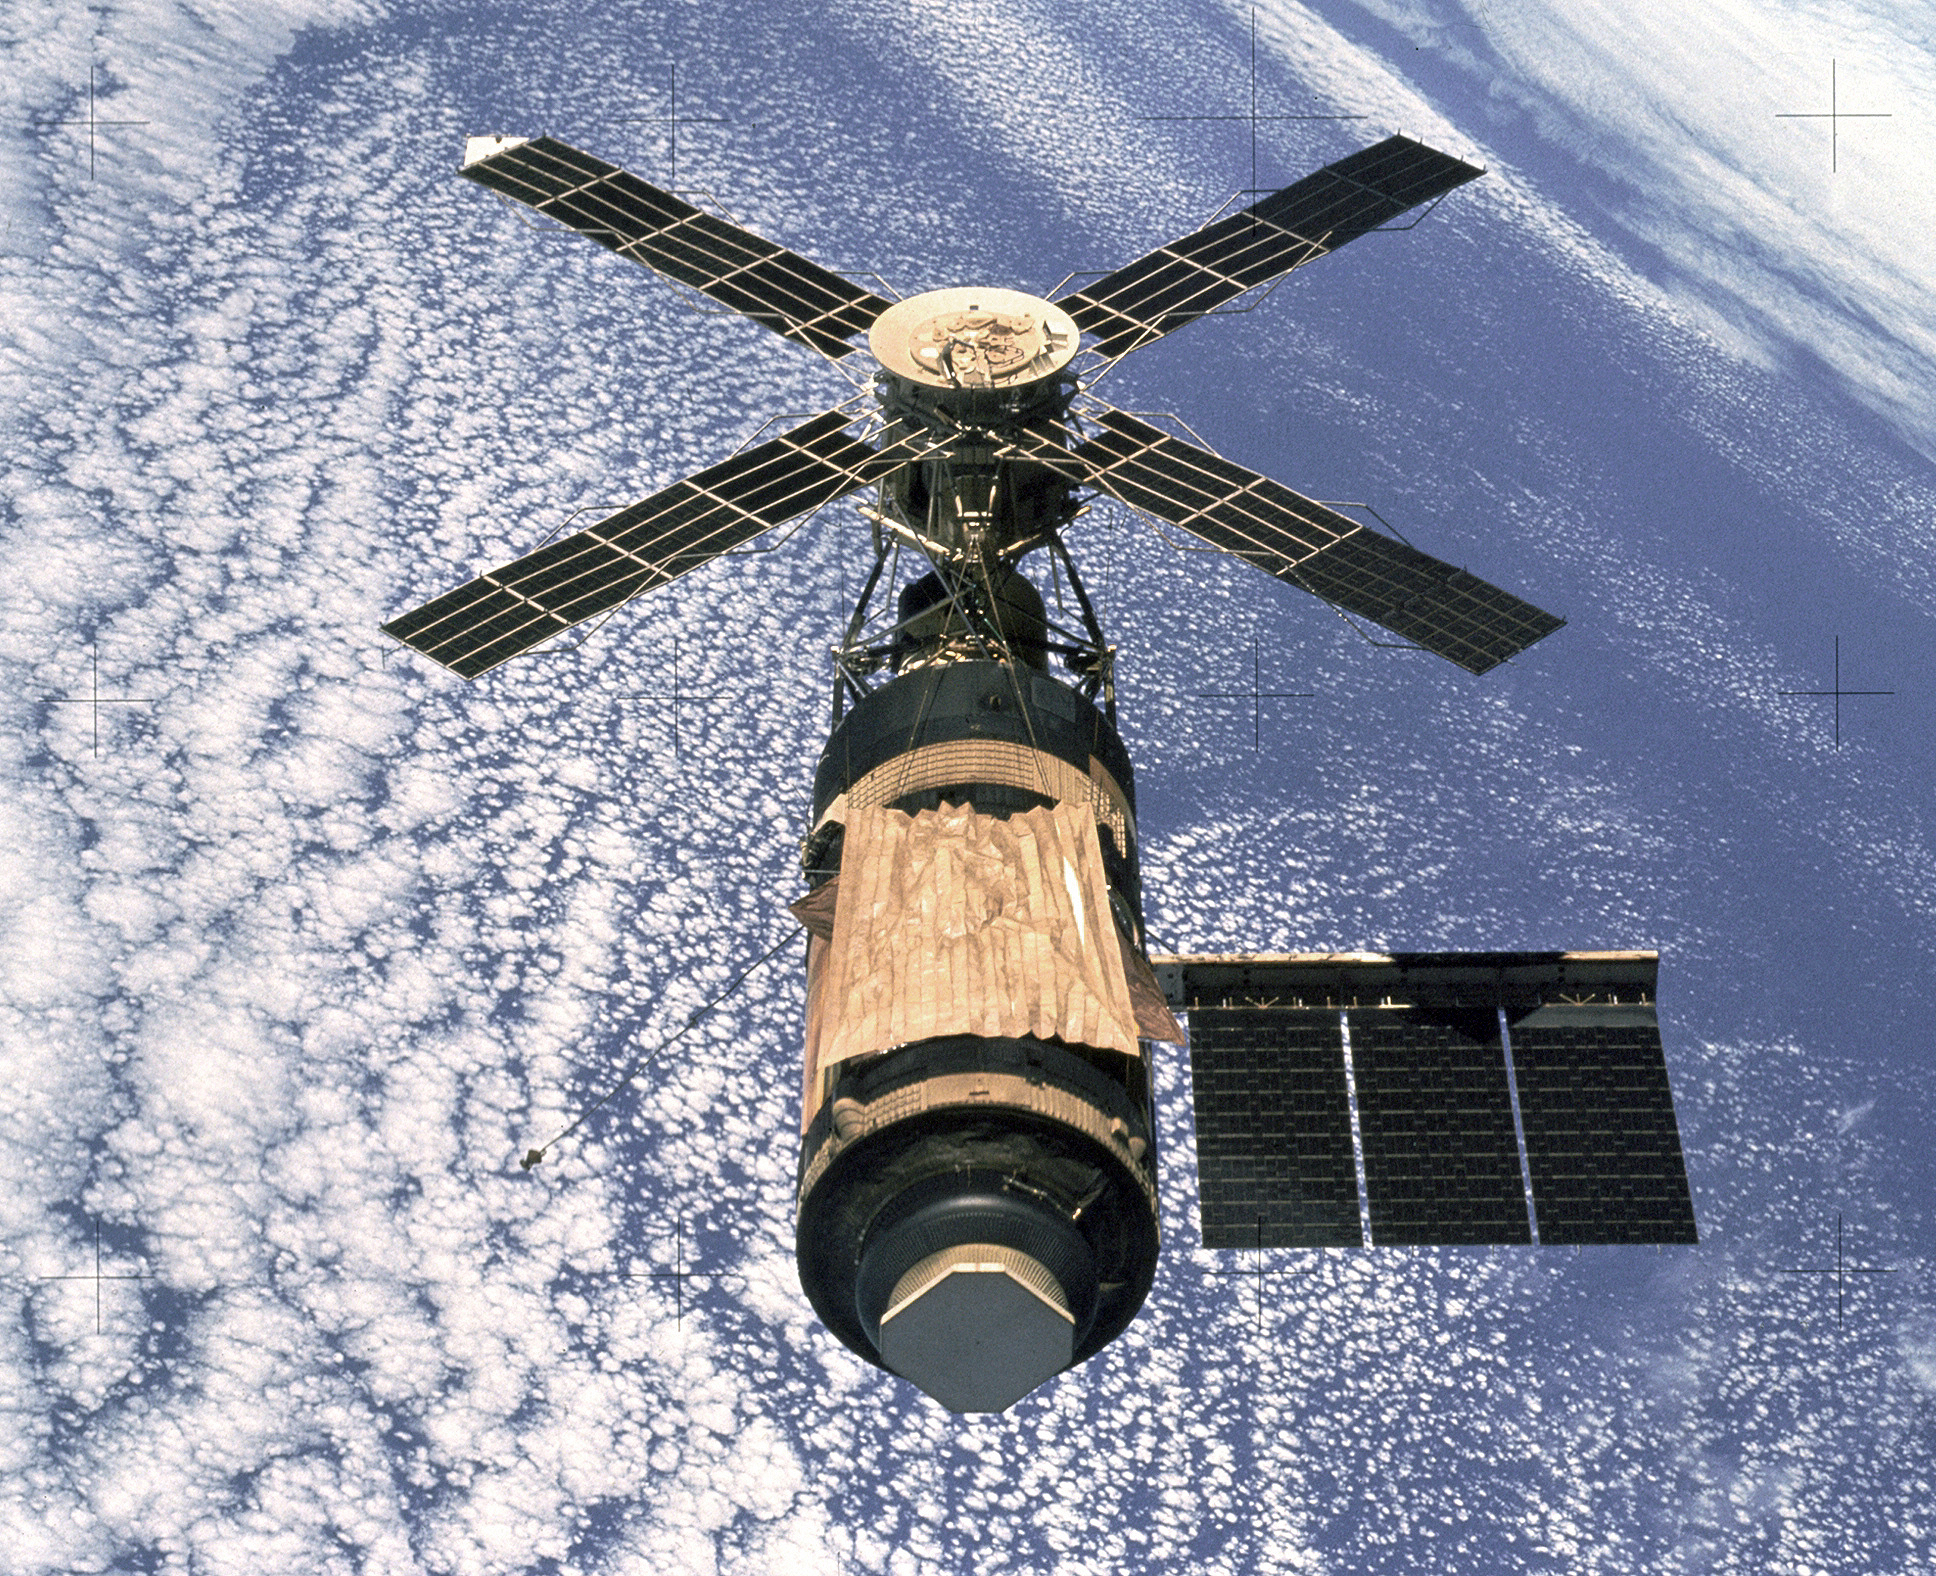 May 14, 1973: US Launches First Space Station